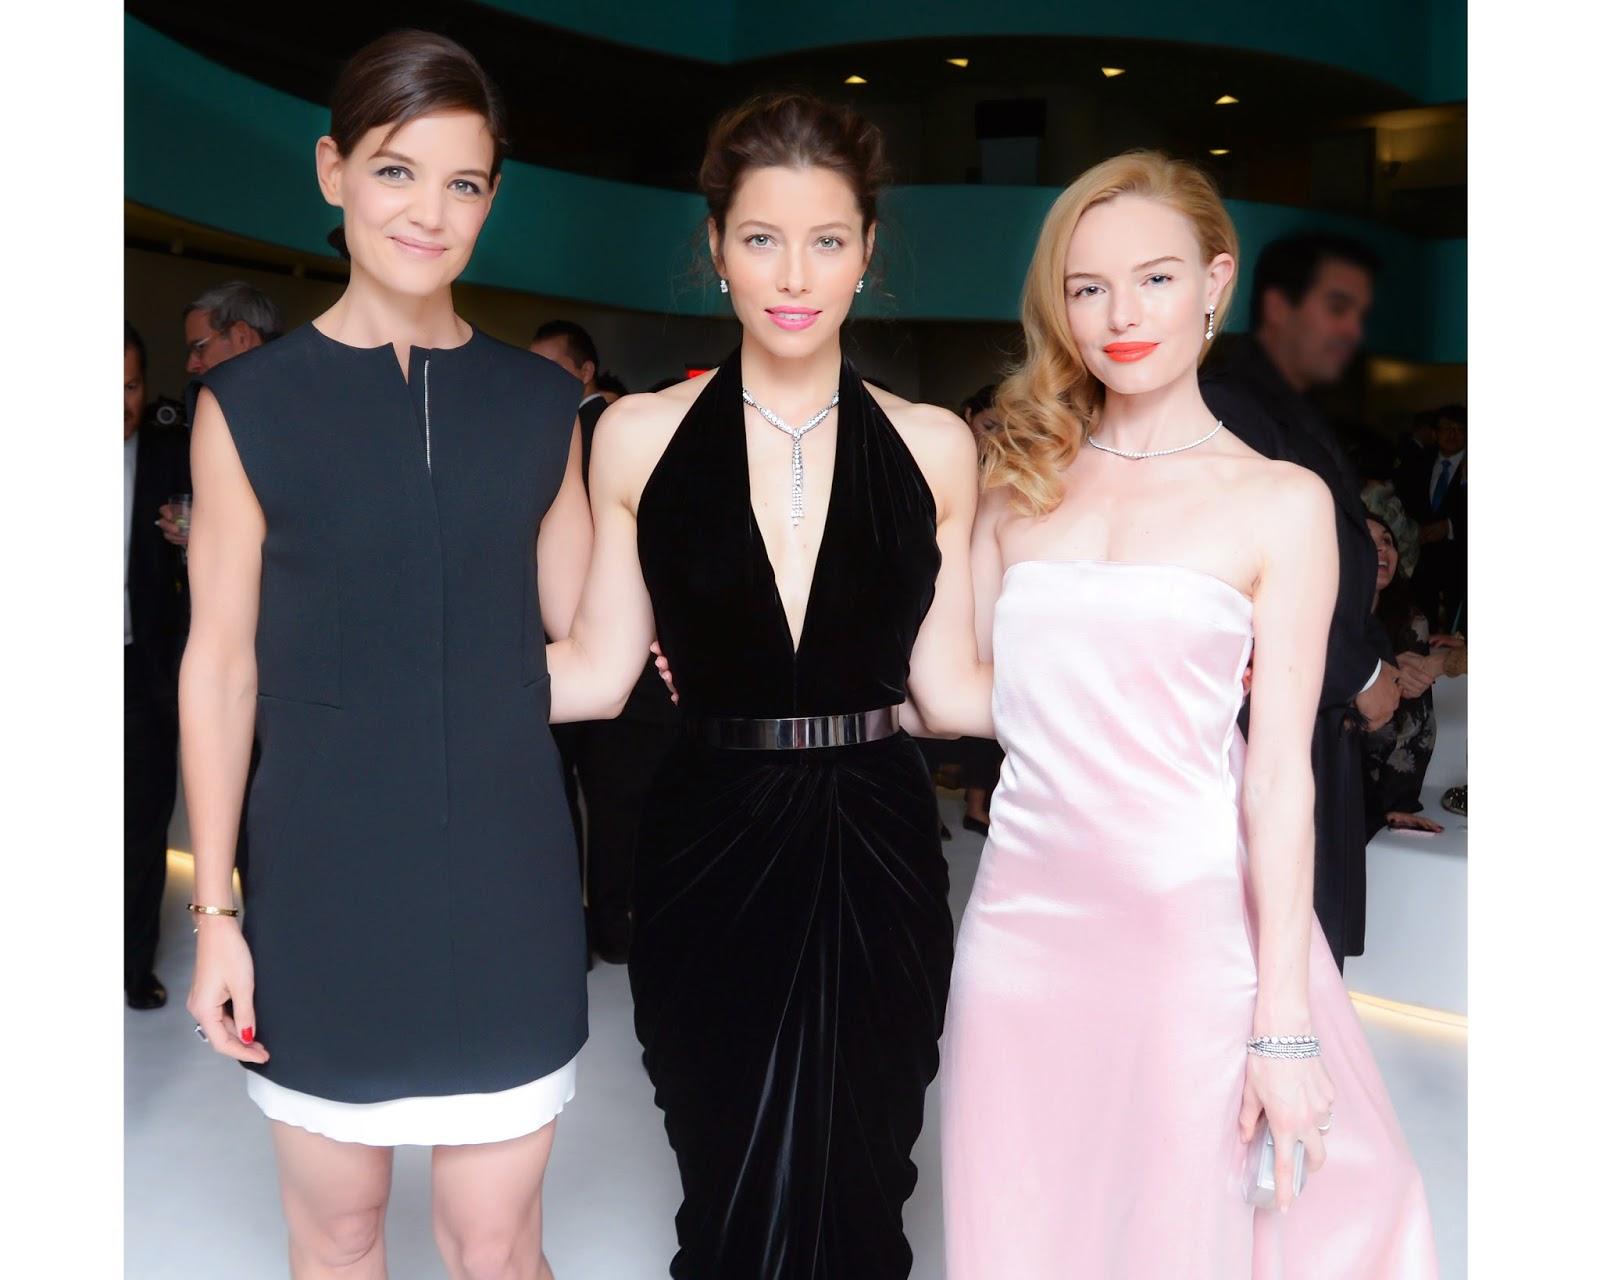 Jessica Biel, Kate Bosworth, Katie Holmes sparkled in Tiffany & Co. diamonds at the 2014 Blue Book debut in New York City